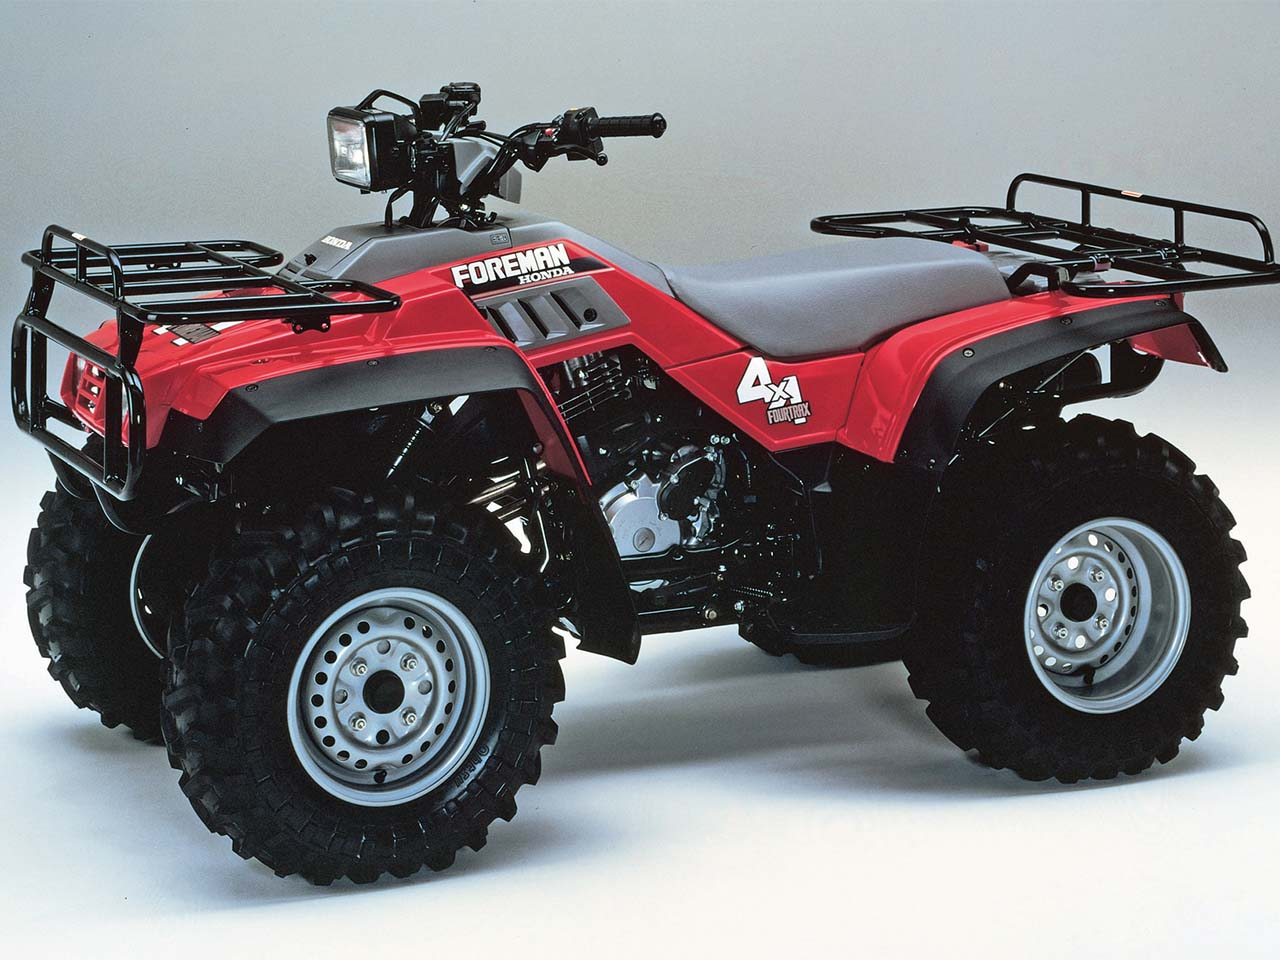 rancher 350 4x4 atv wiring diagram wiring library 2005 Honda Rancher 350 4x4 2006 honda rancher 350 parts diagram free templates no 5 \u2013 the 1987 fourtrax foreman 4x4 \u2013 job site leader